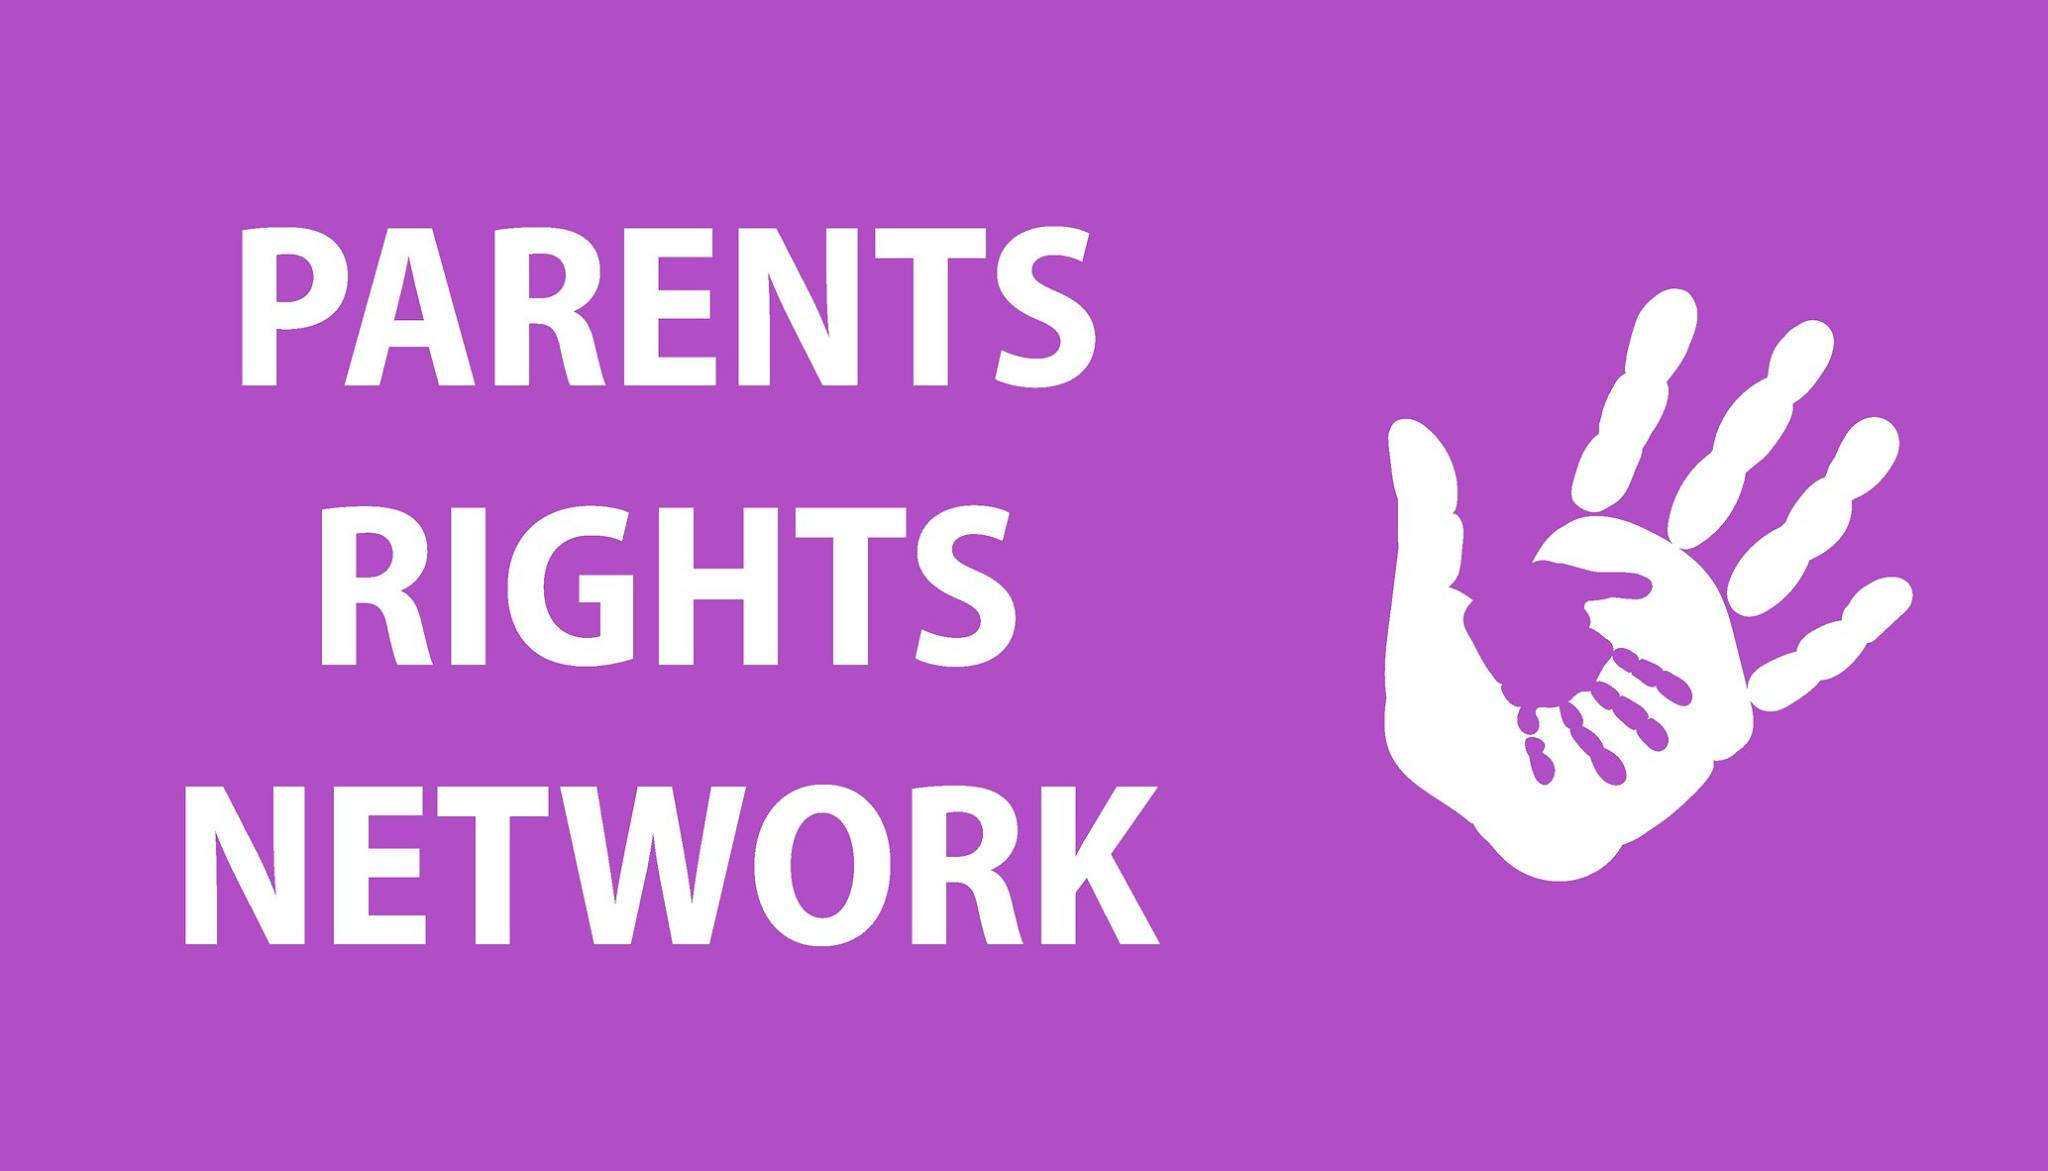 Parents Rights Network Facebook